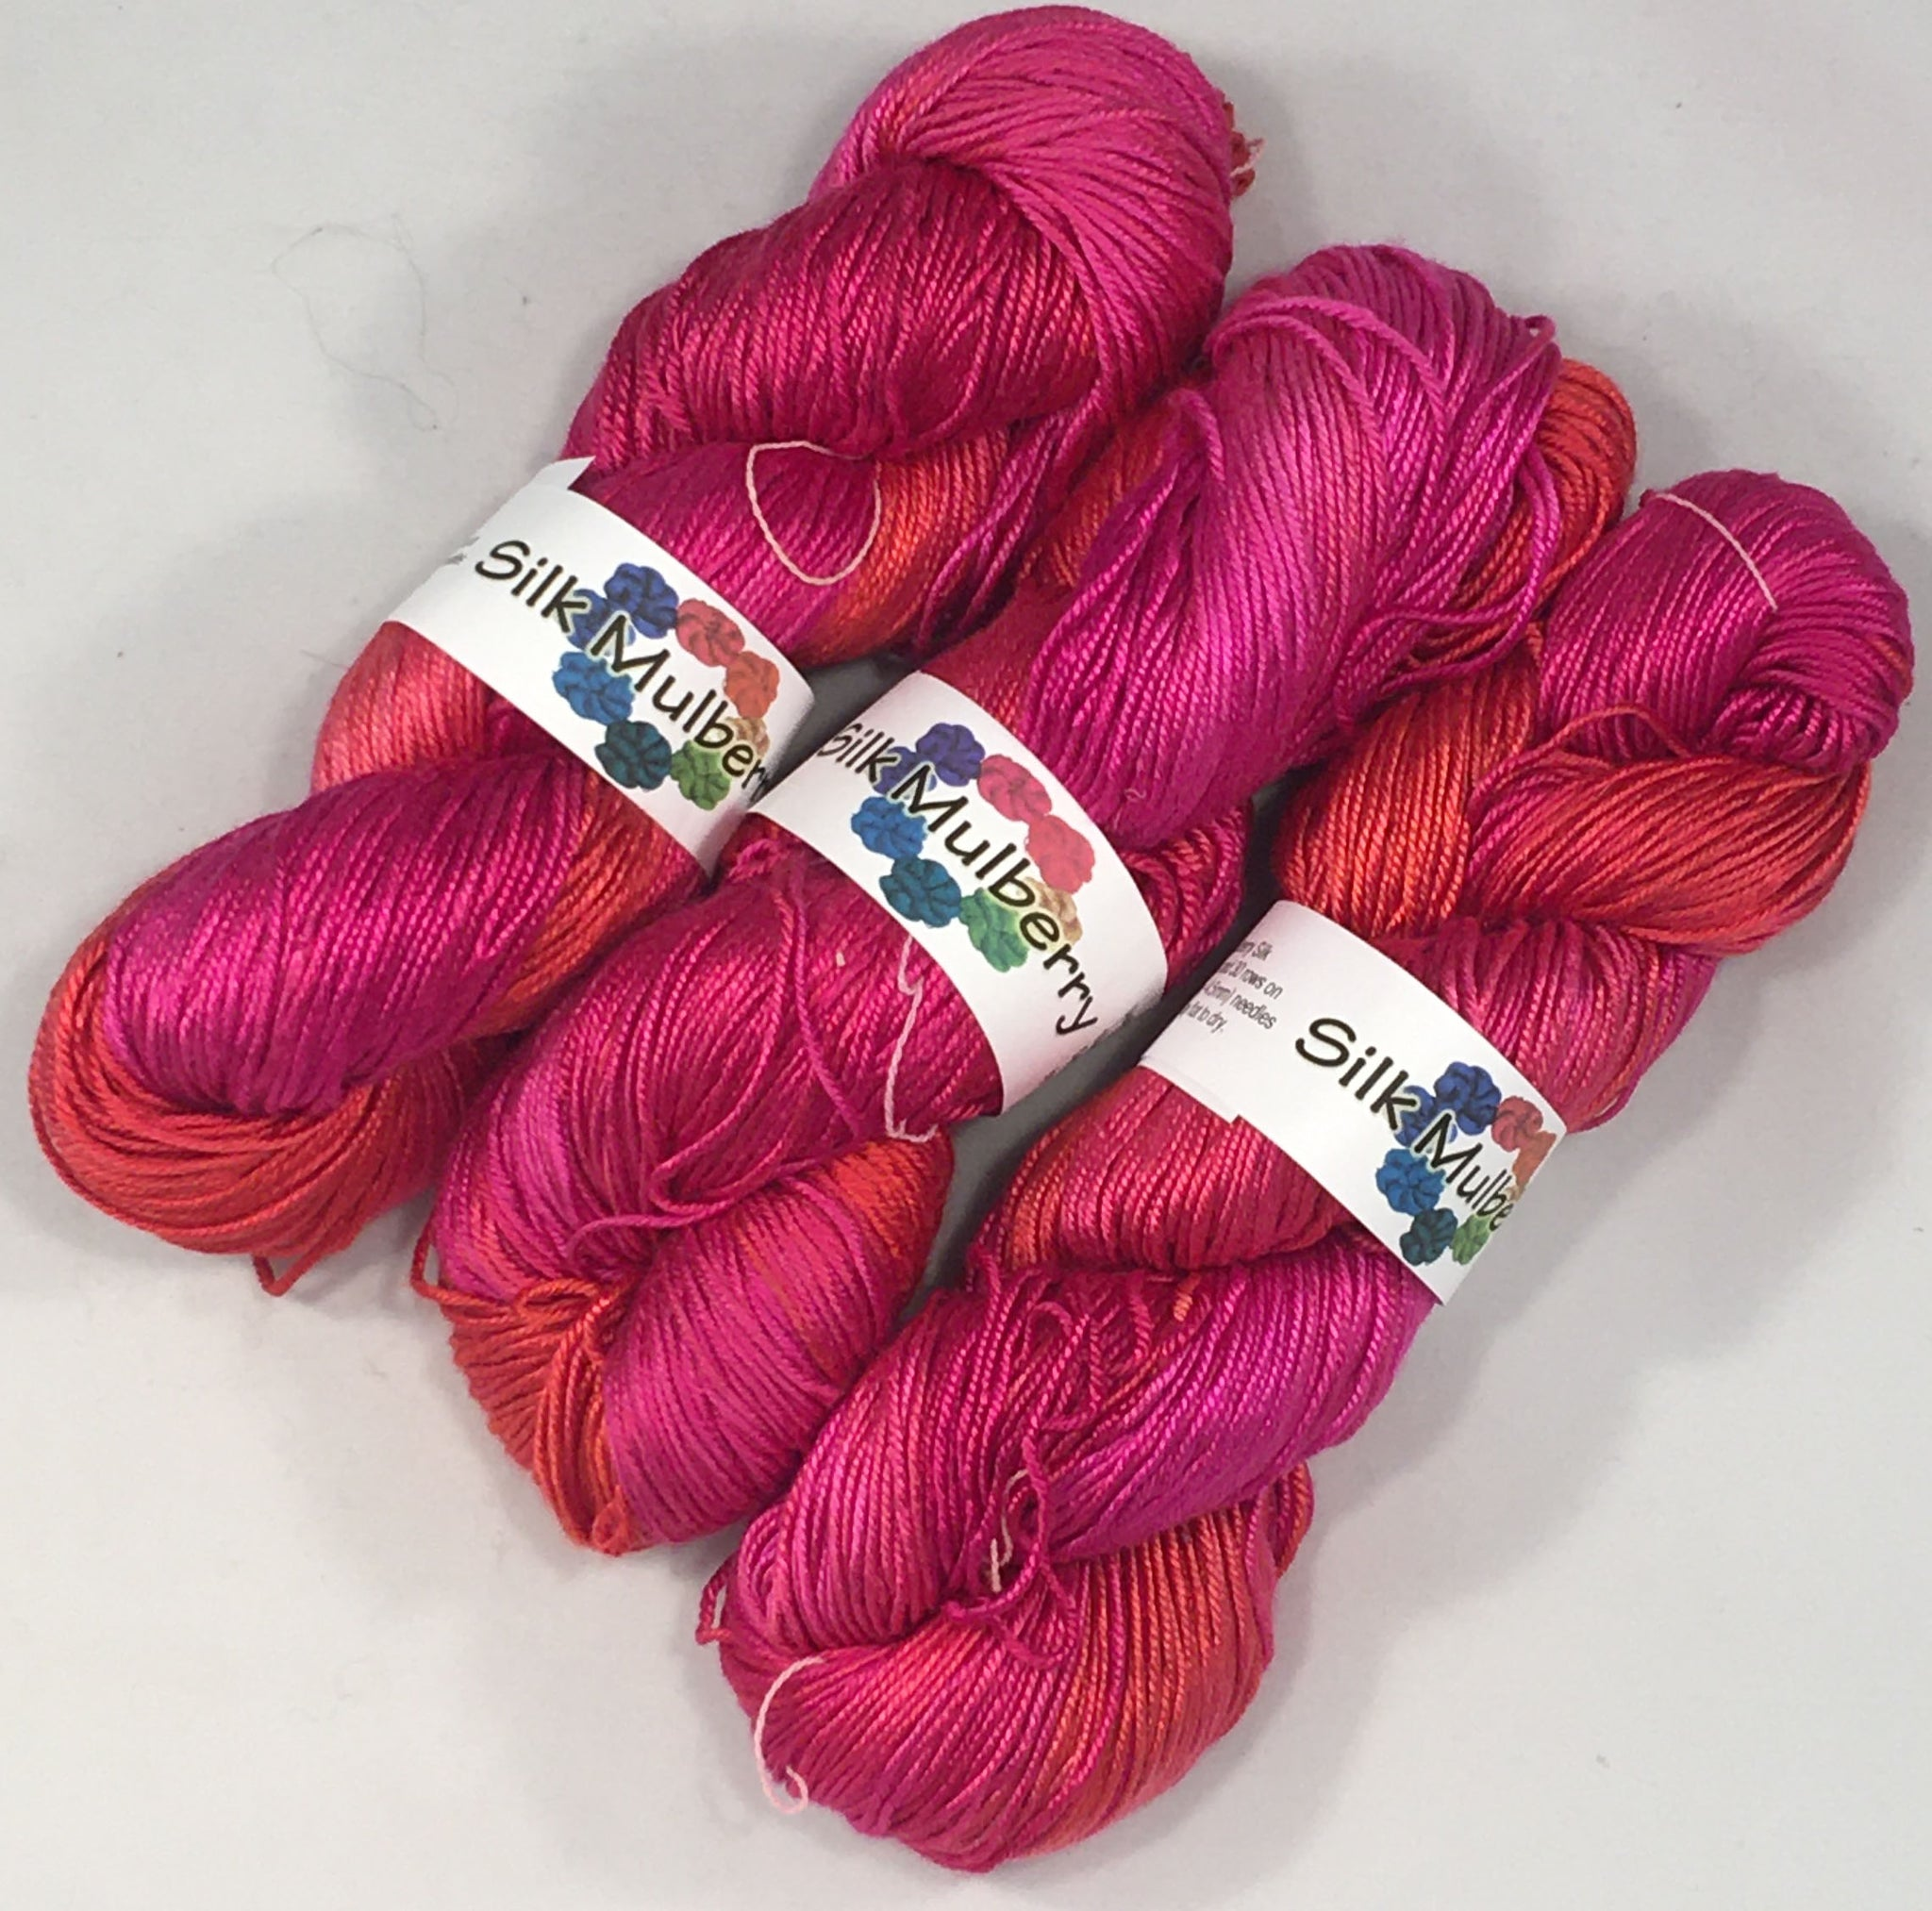 Silk Mulberry #060